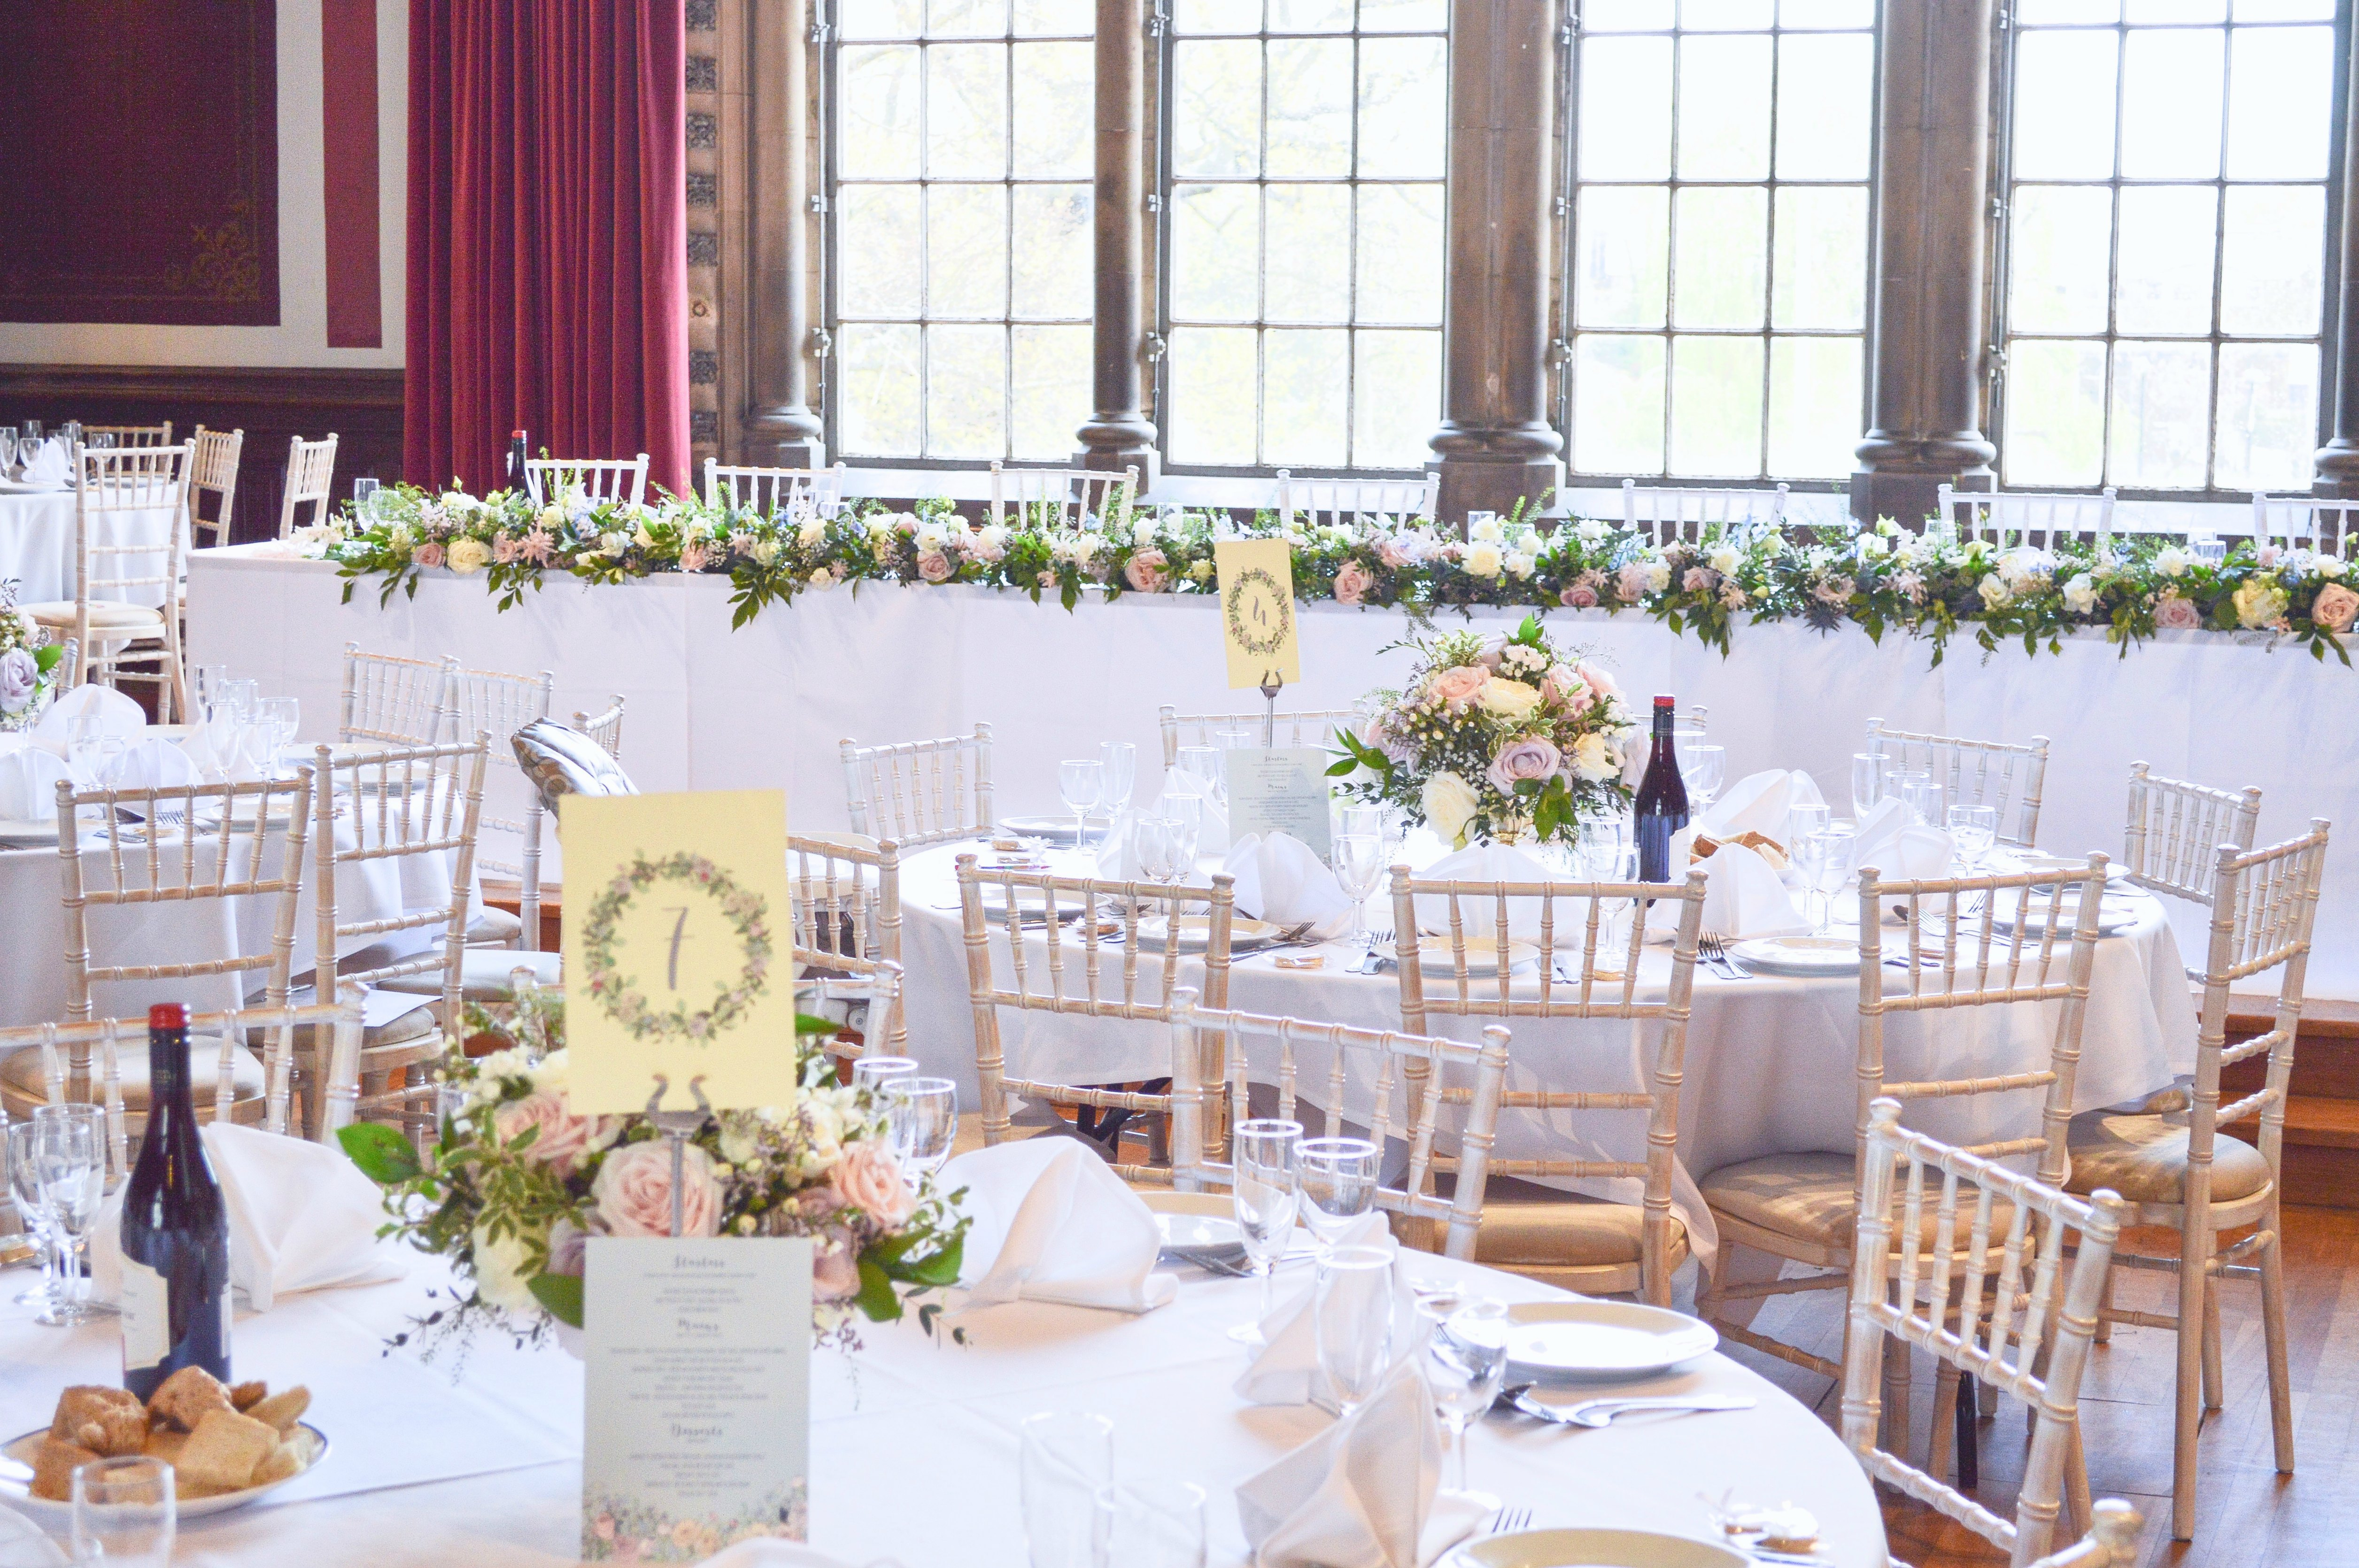 Natural garden rustic style spring pastel pink blue lilac head top table flower garland wedding reception centrepieces Dulwich College Cherie Kelly wedding flowers London 2